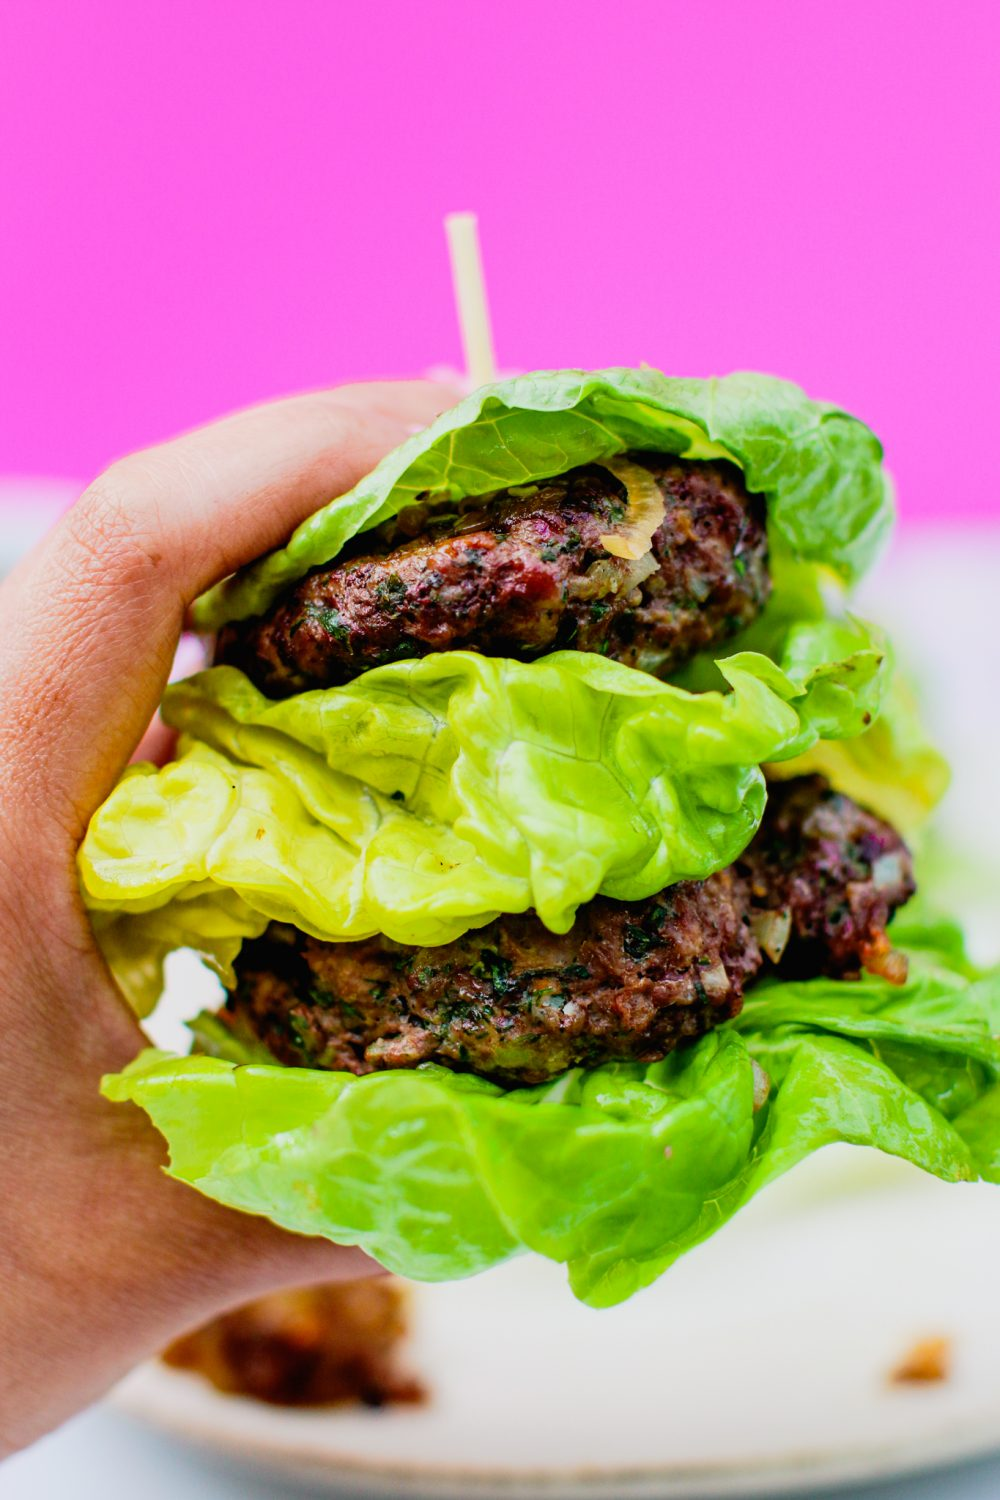 Pegan Burger with Caramelized Shallots